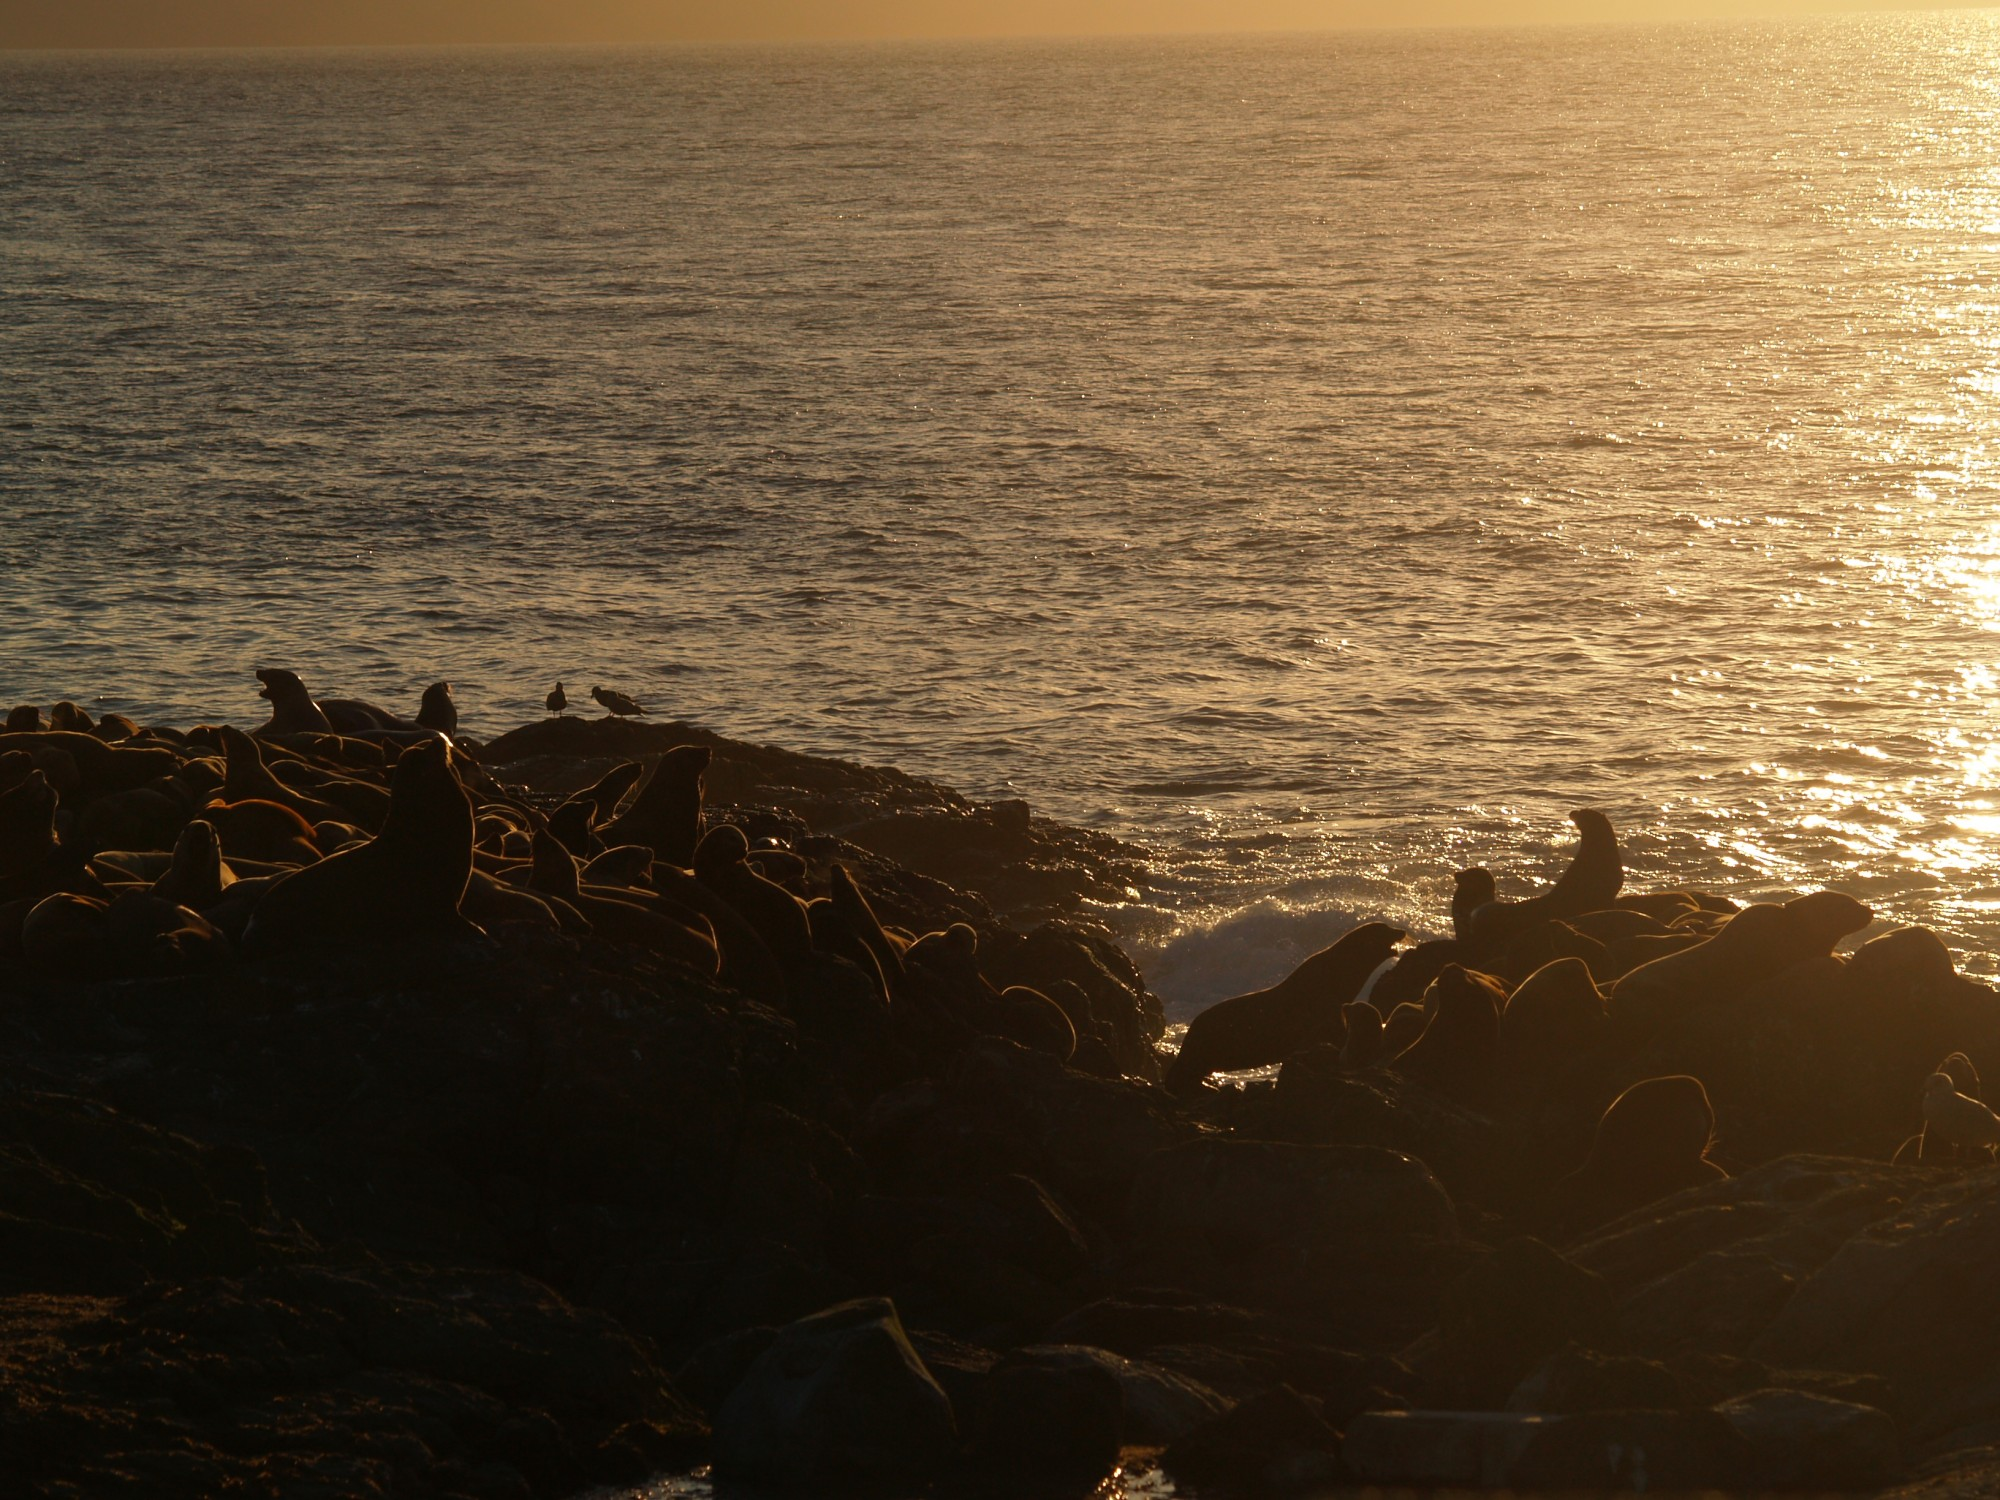 Sea lions at sunset